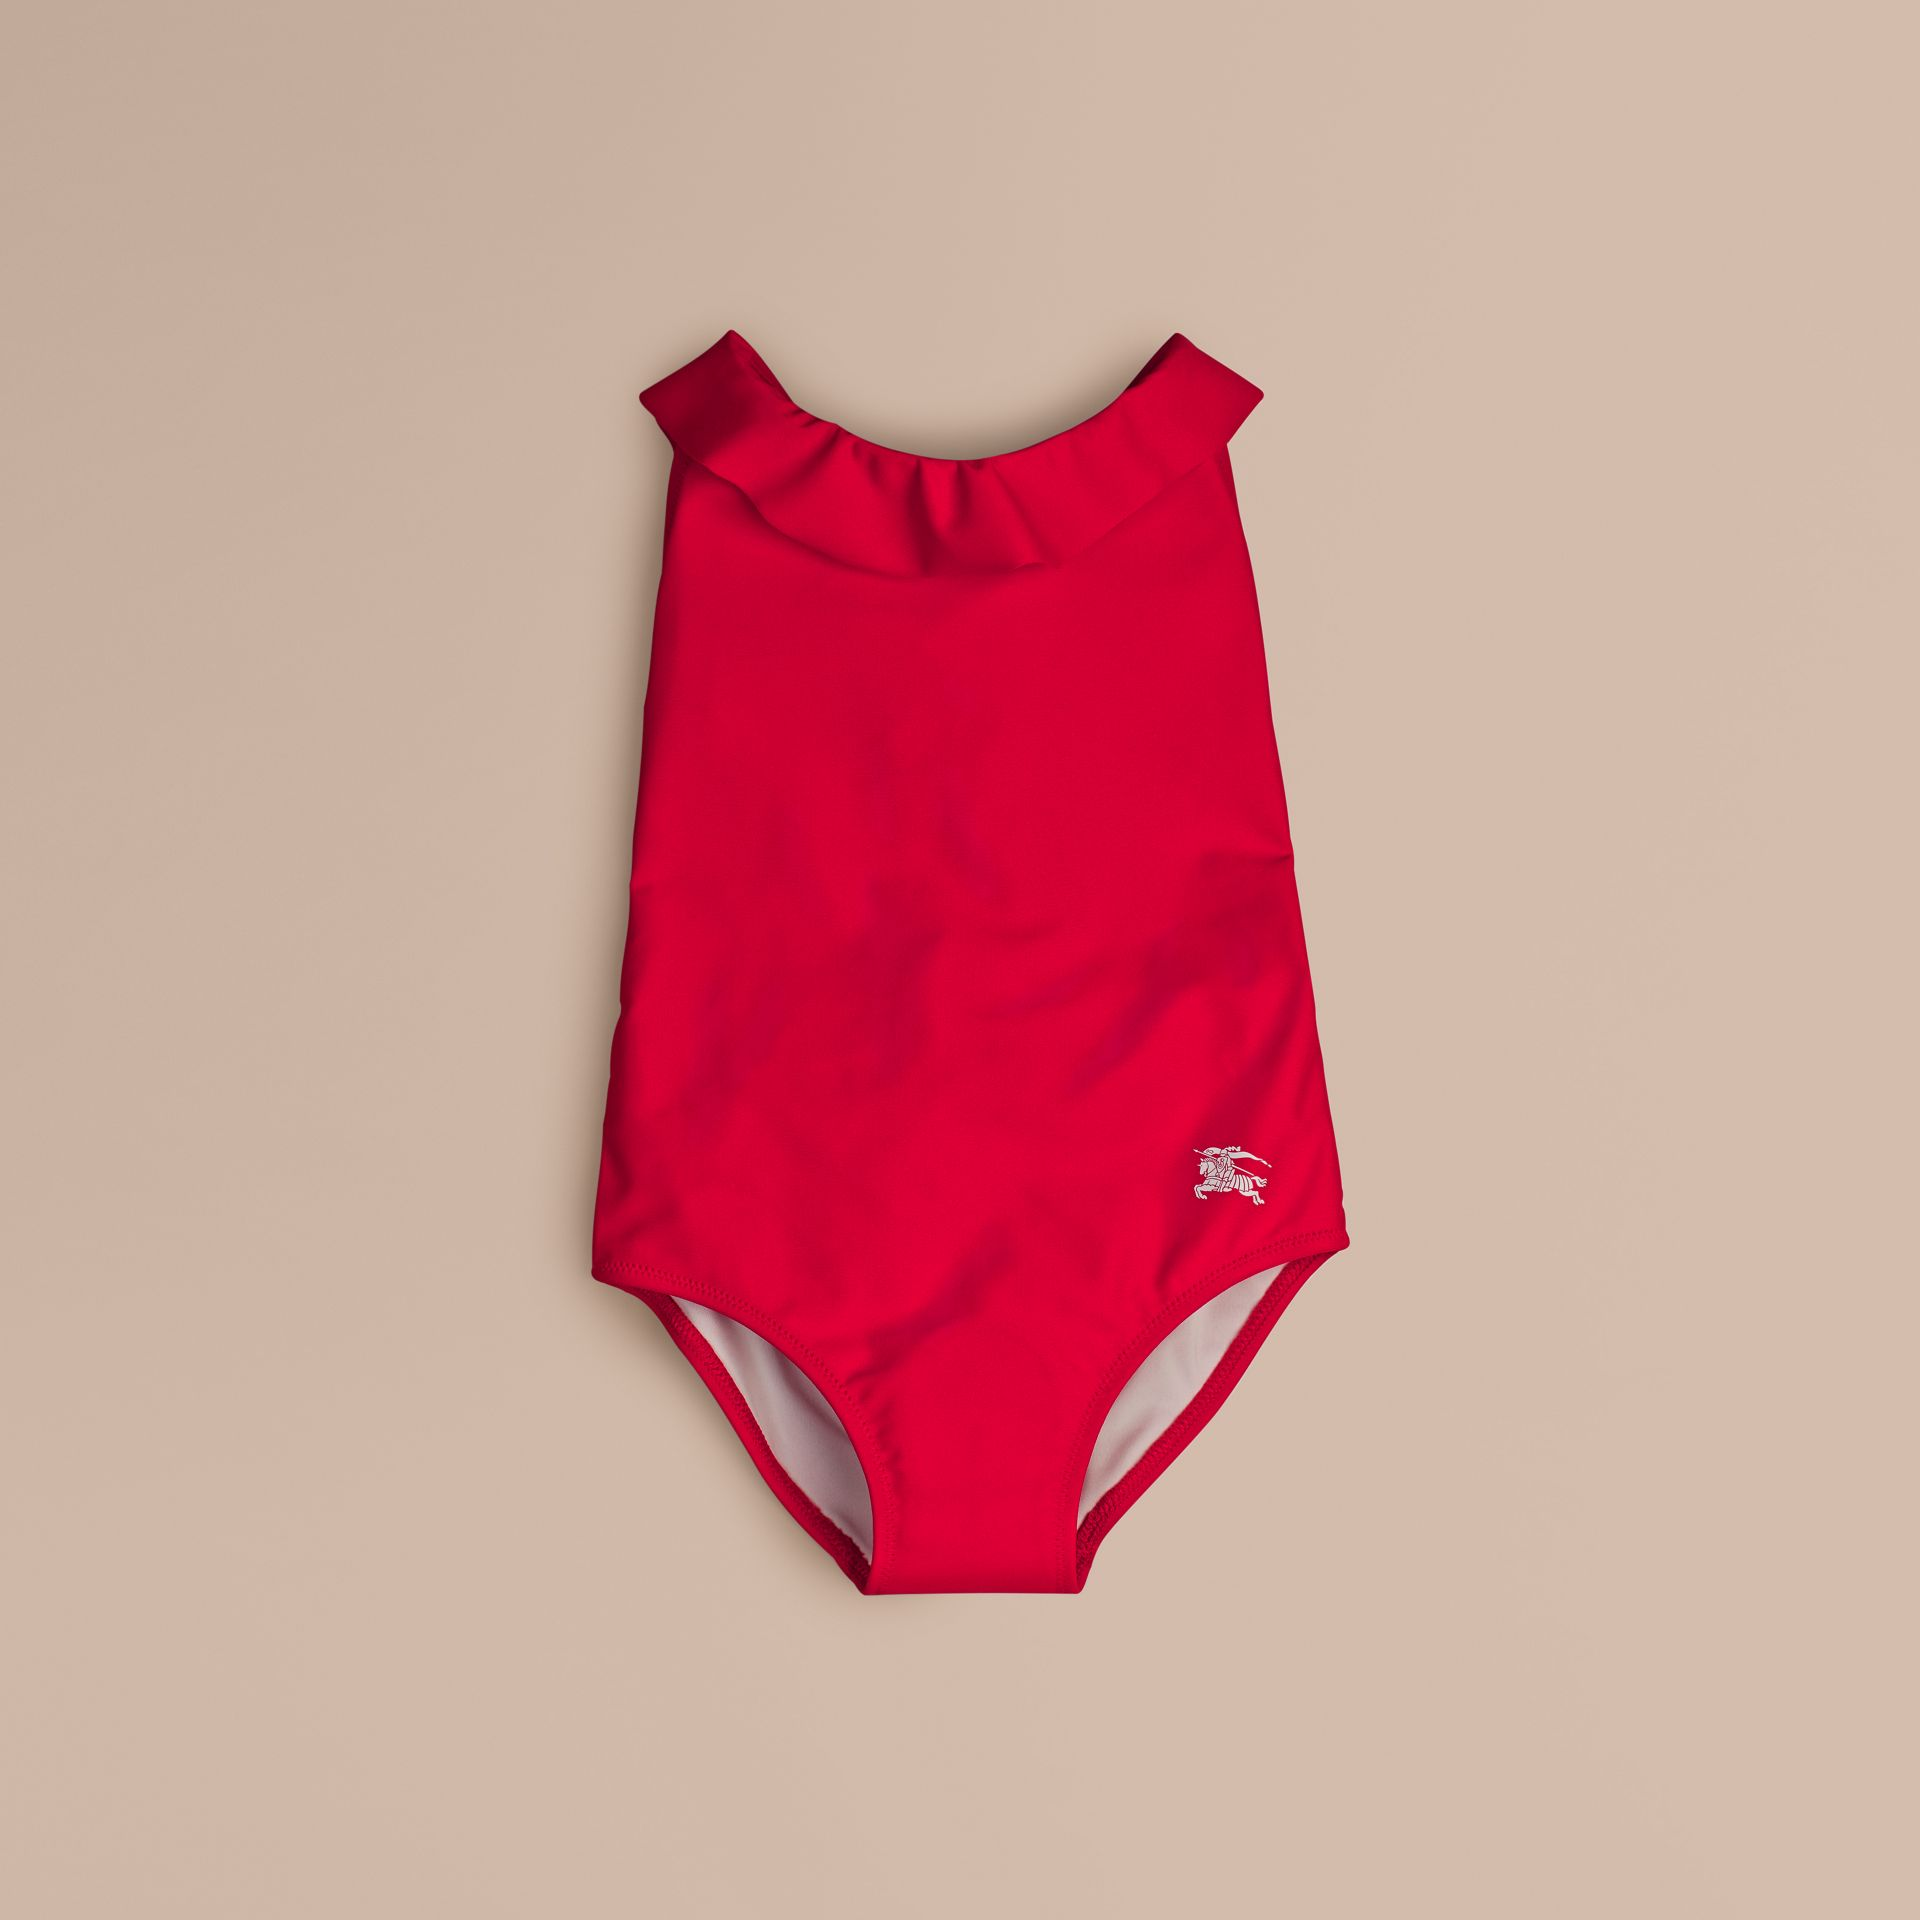 Ruffle Detail One-piece Swimsuit in Poppy Red - Girl | Burberry Canada - gallery image 1